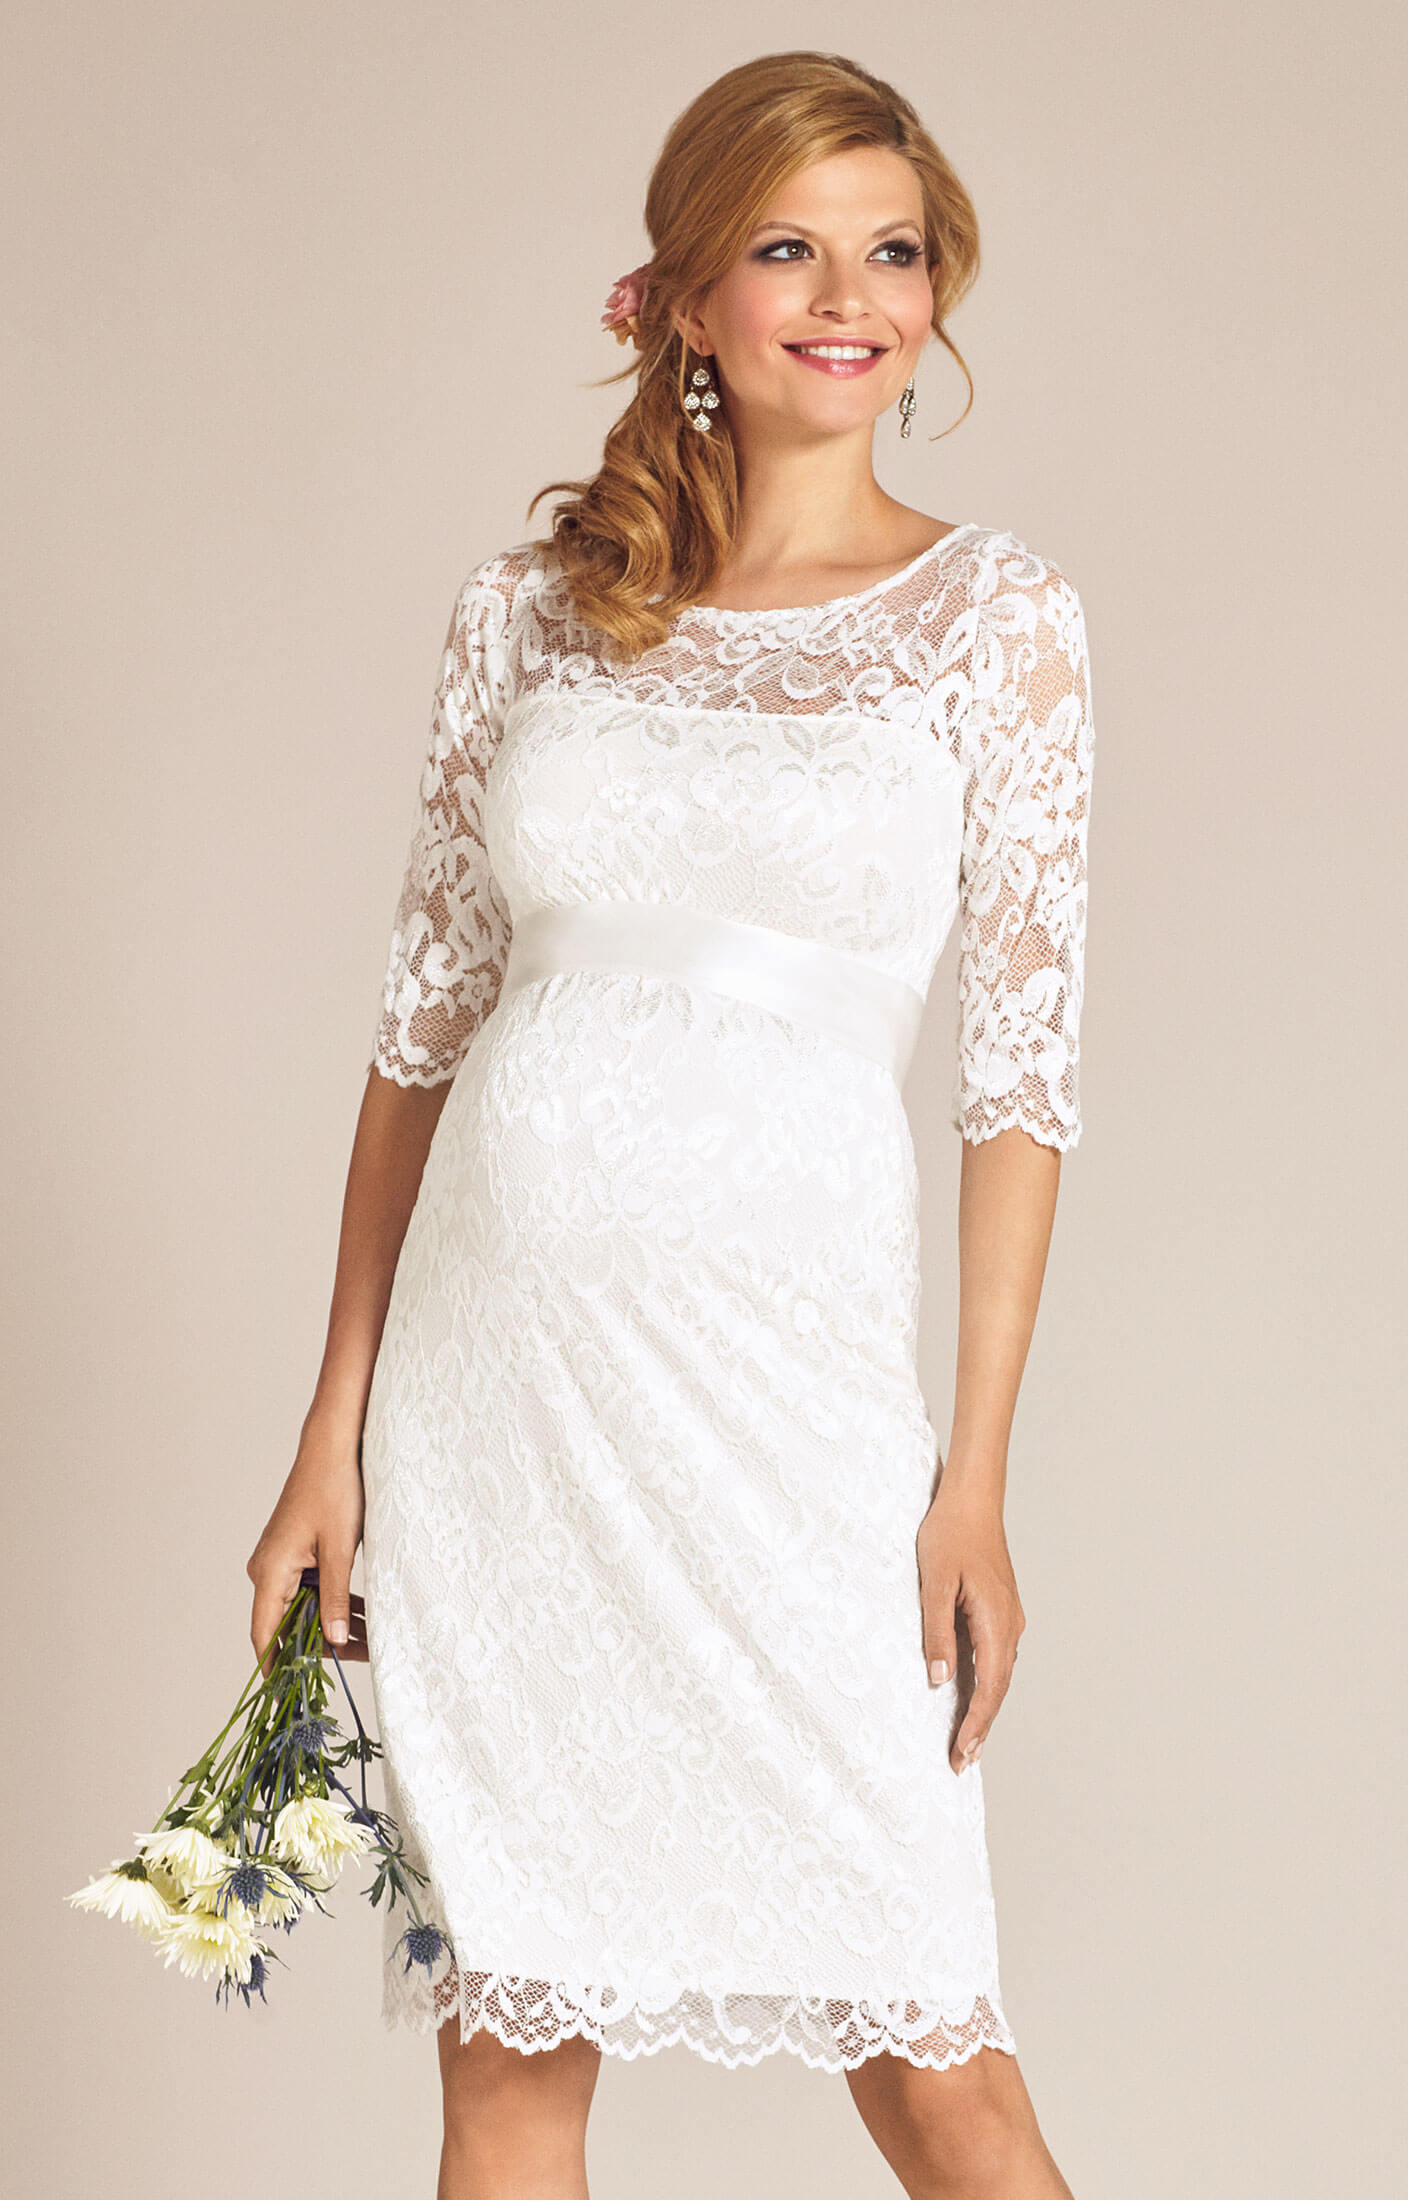 89100c66dcf Amelia Lace Maternity Wedding Dress Short (Ivory) - Maternity ...